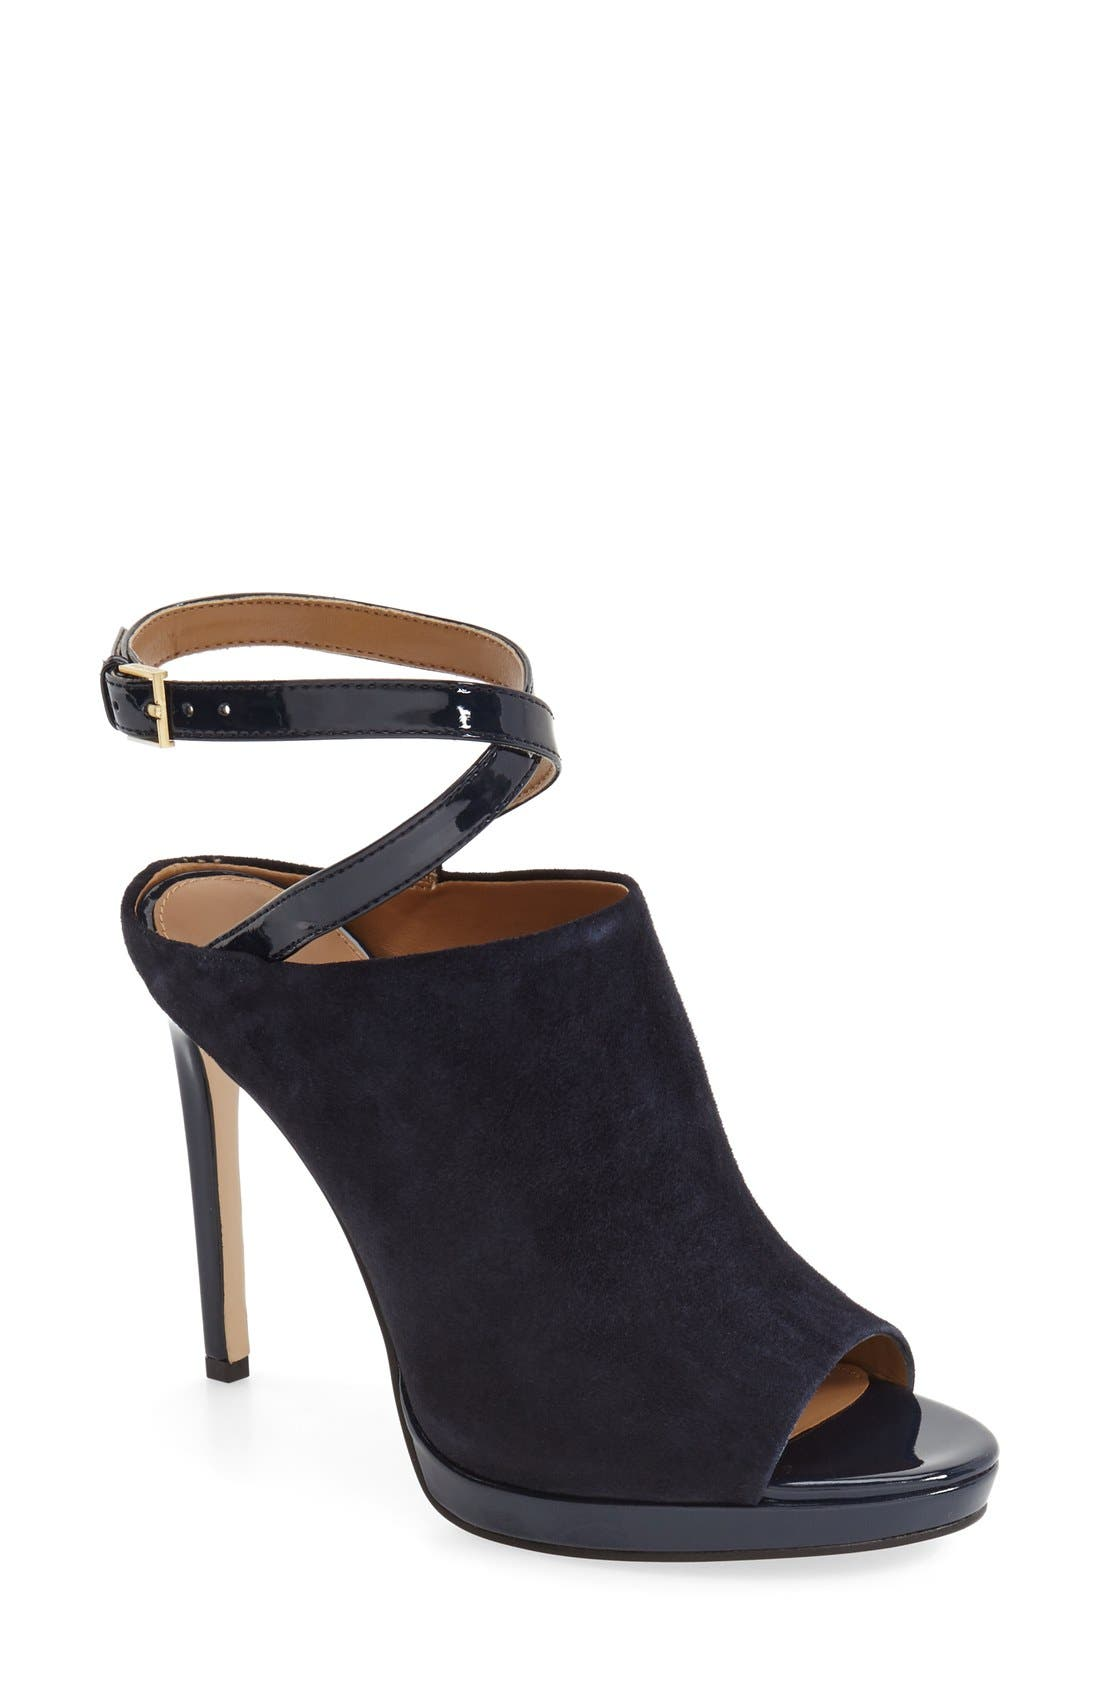 Alternate Image 1 Selected - Calvin Klein 'Samantha' Ankle Strap Mule (Women)